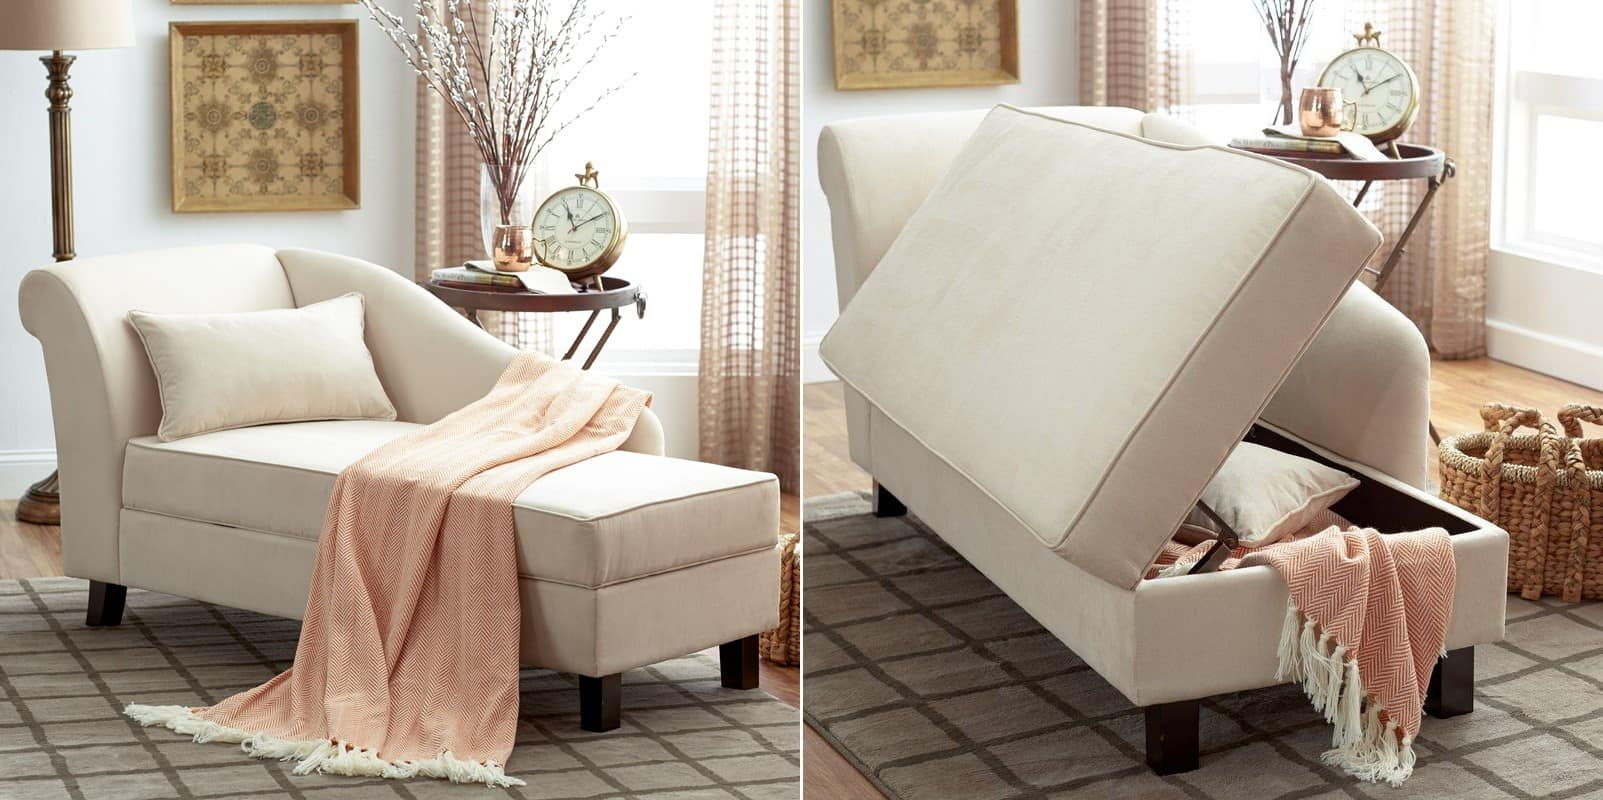 A Solo Chaise Lounge with Storage